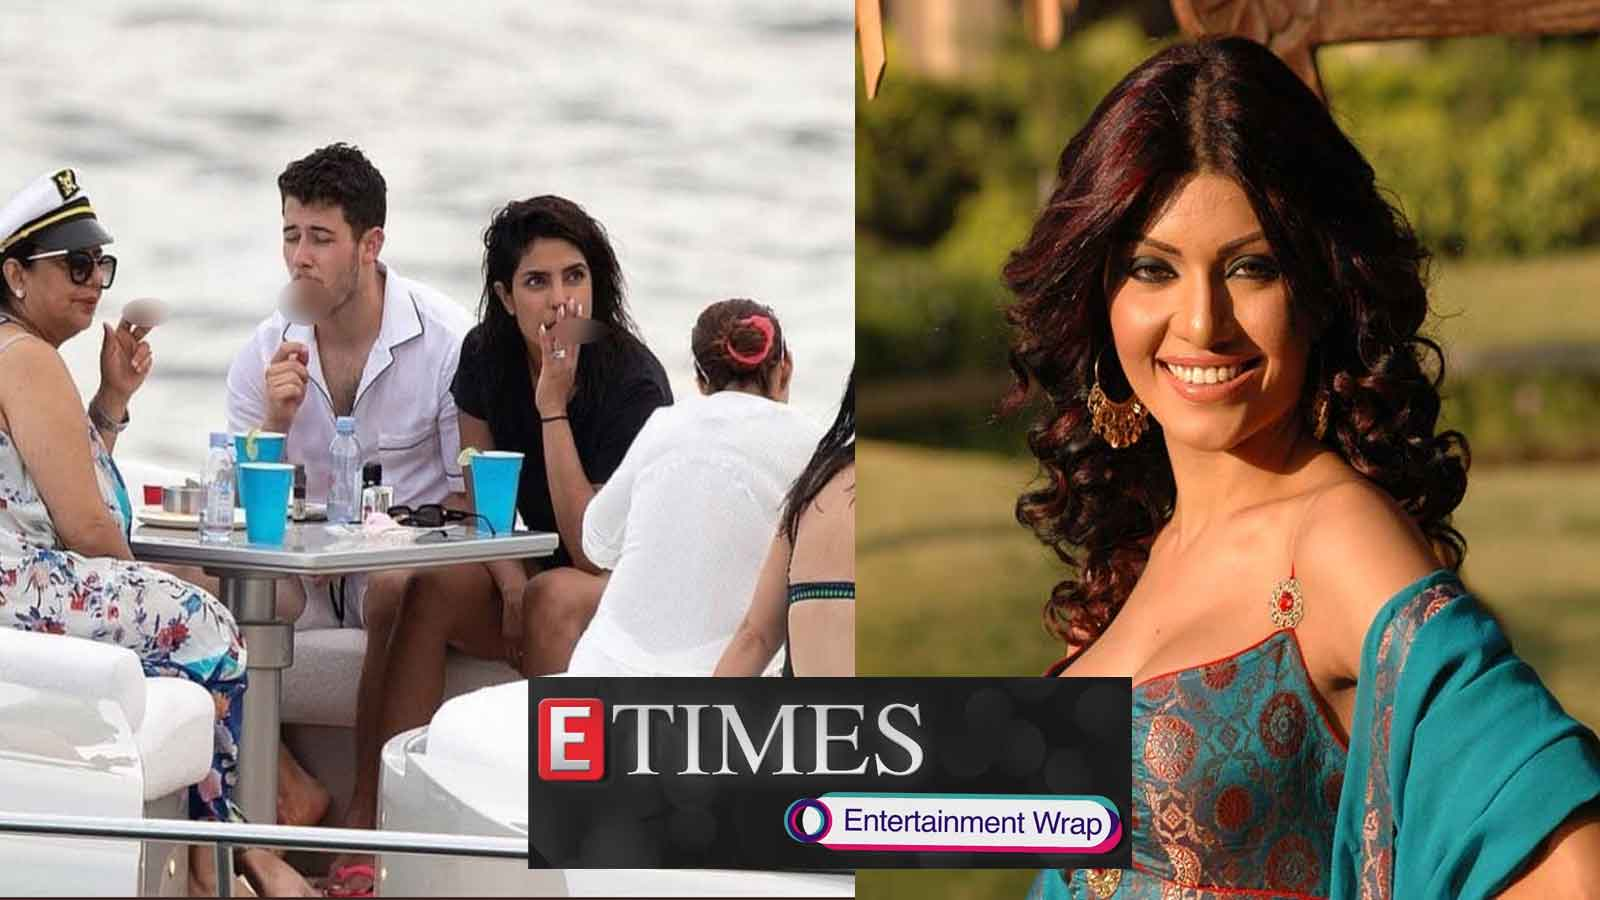 priyanka-chopra-enjoys-a-smoke-gets-trolled-koena-mitra-gets-six-months-in-jail-in-cheque-bouncing-case-and-more